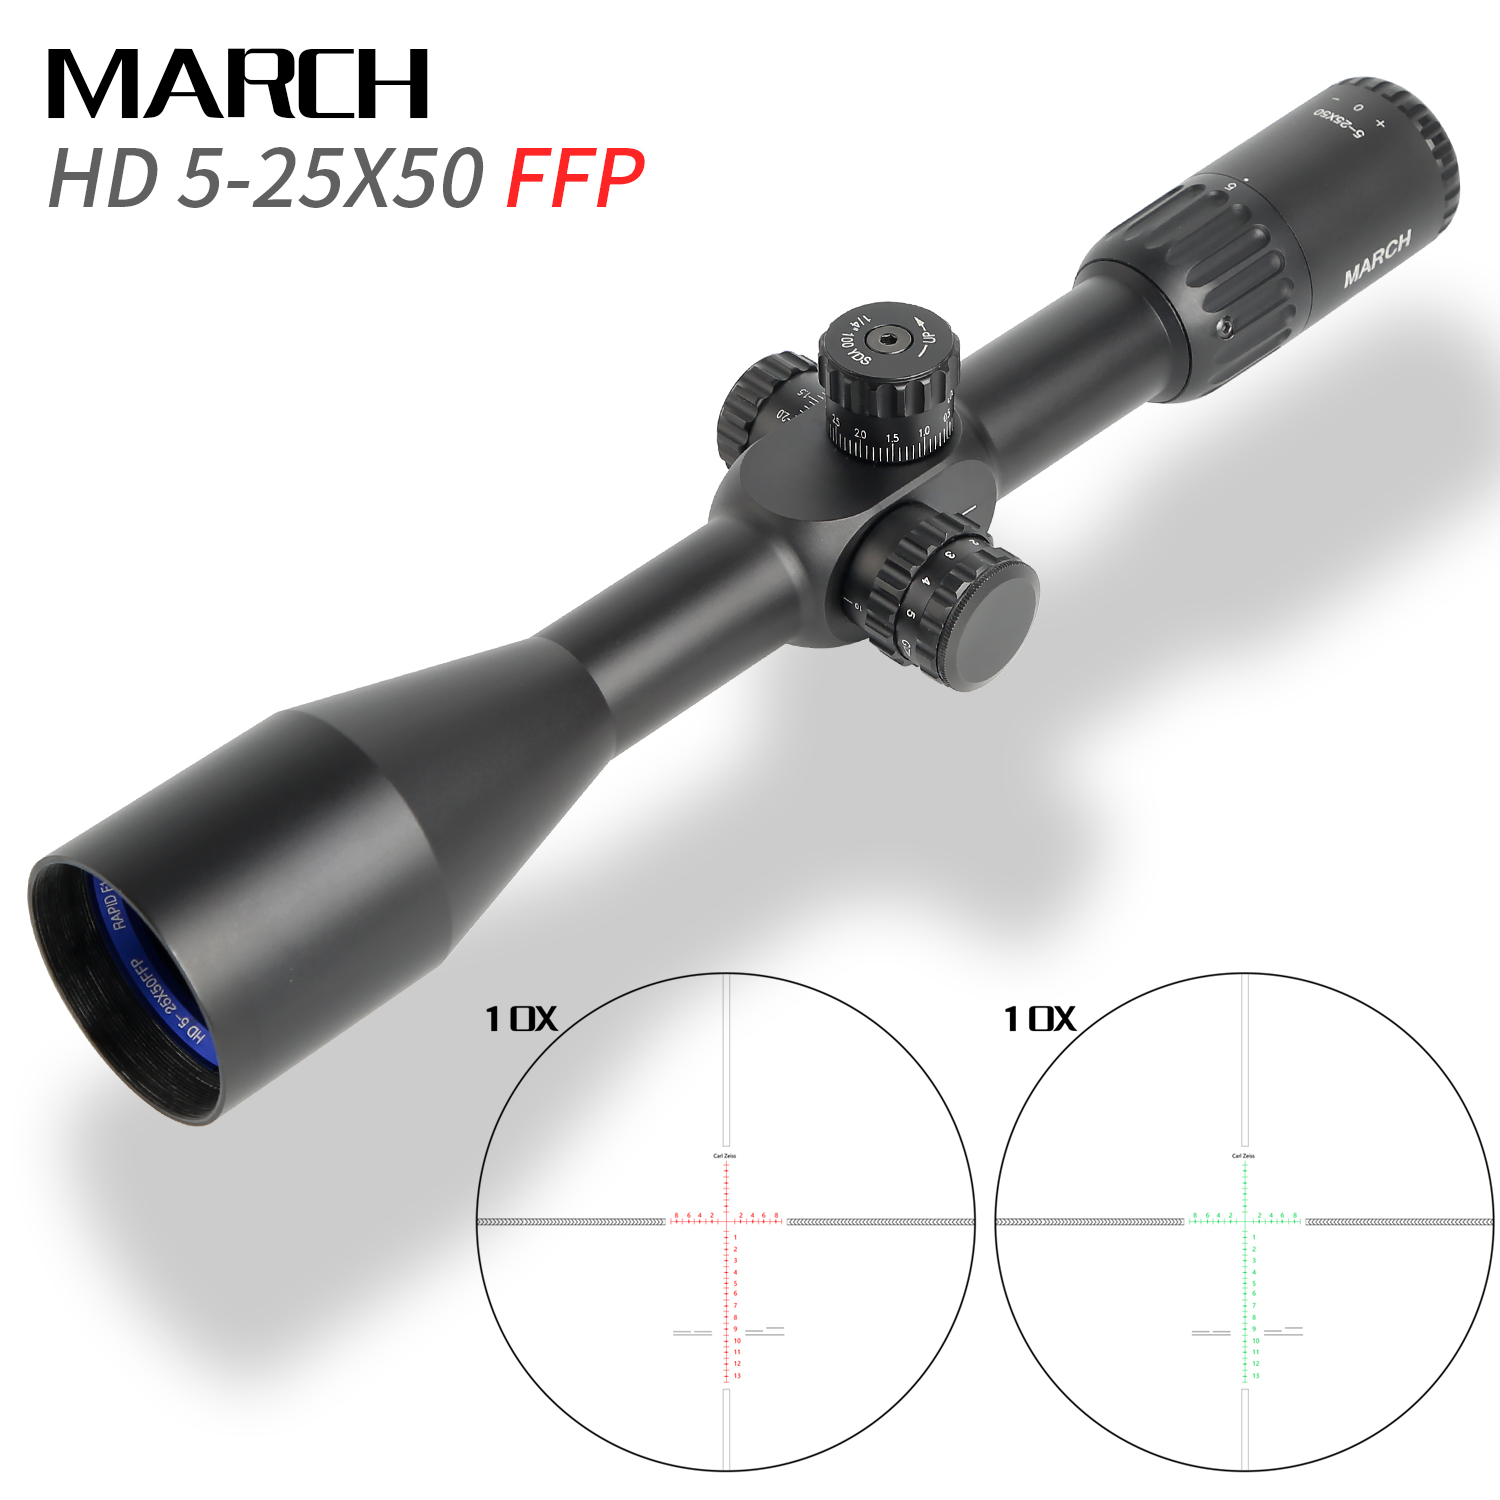 MARCH5-25X50 FFP Tactical RiflesScope AirRifle sniper hunting Optics sight shooting gun Rifle scopes huntinggun accessories